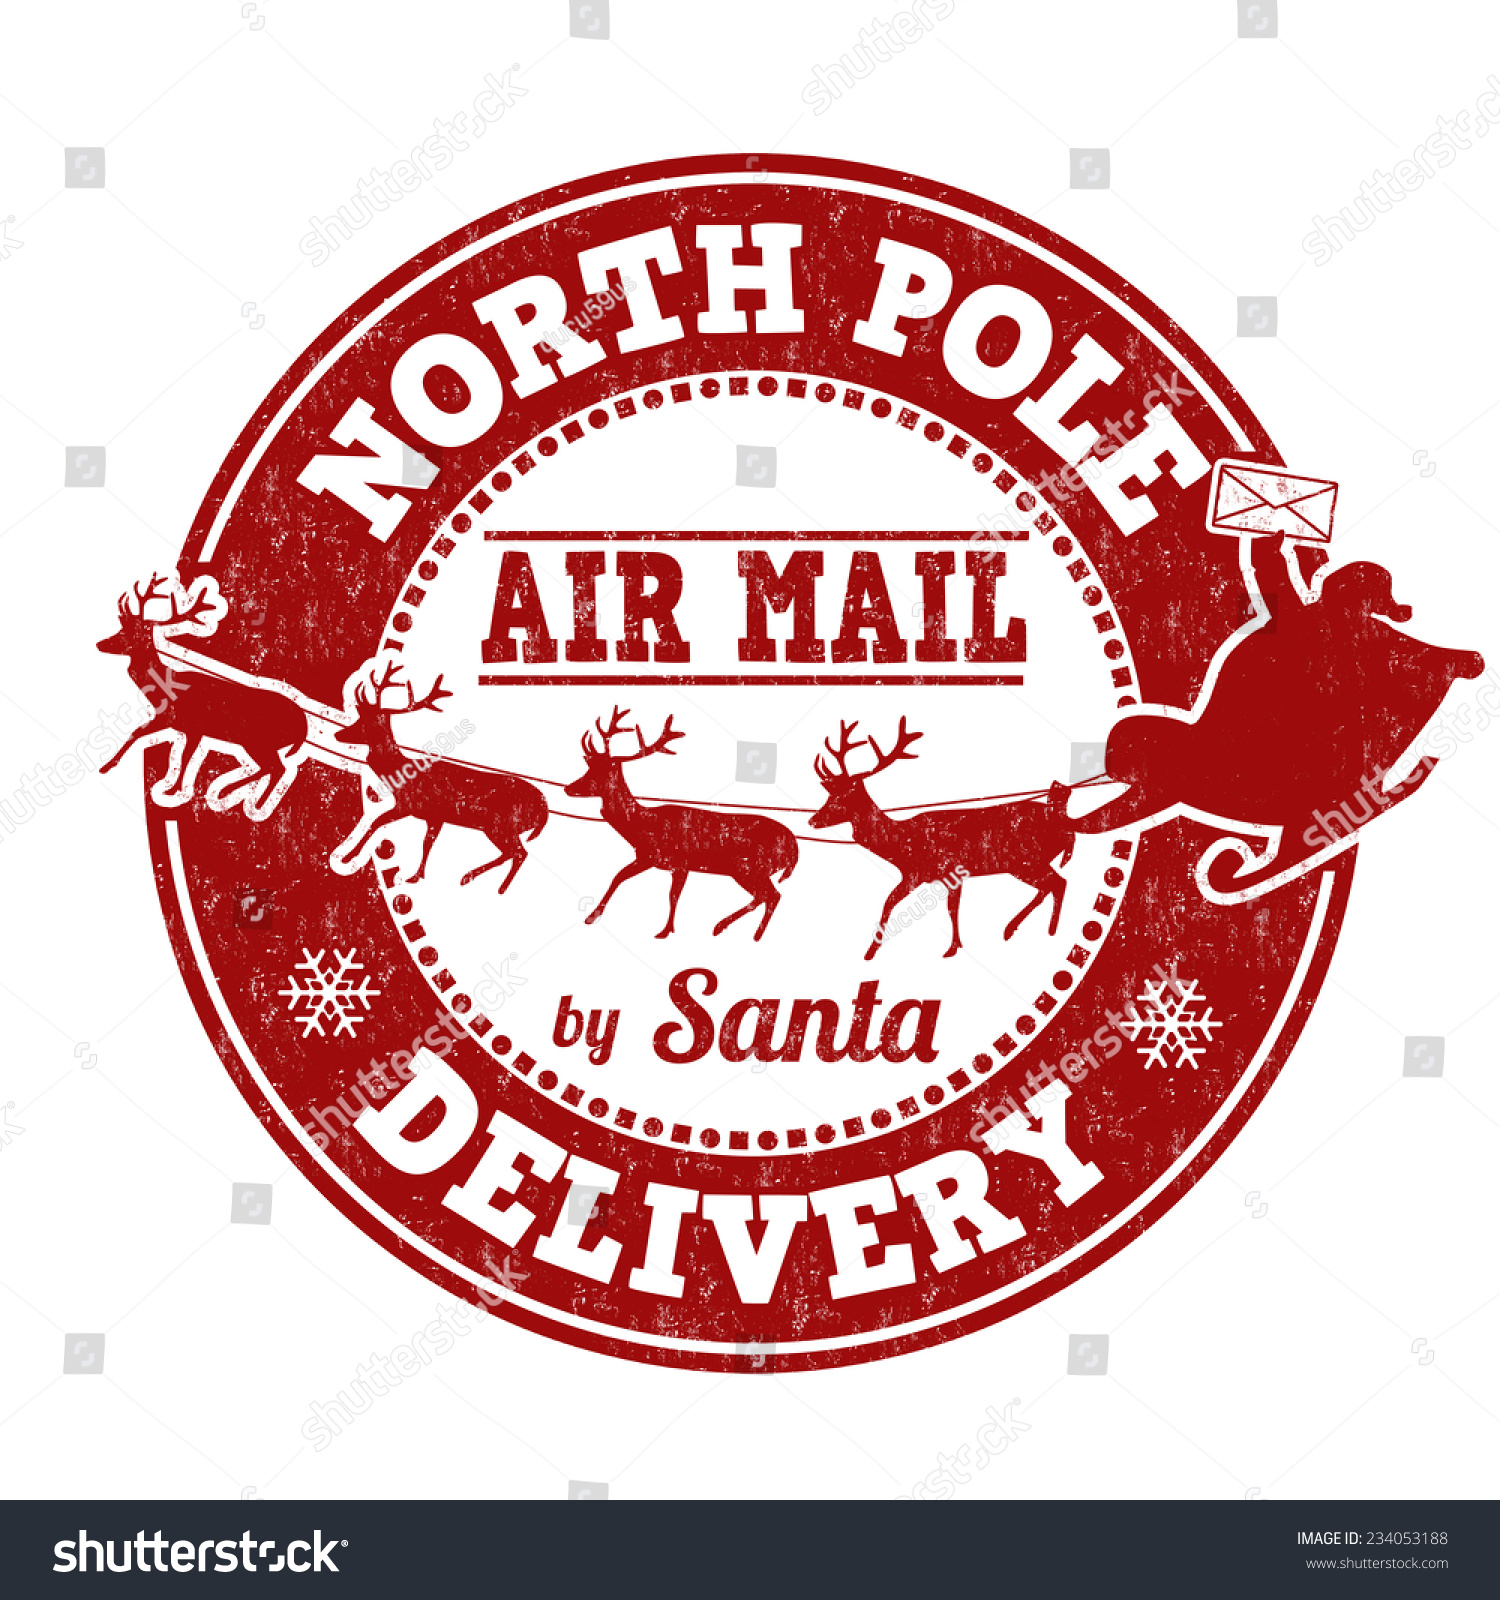 Santa North Pole Stamp Stock images similar to id 109278368 - north ...